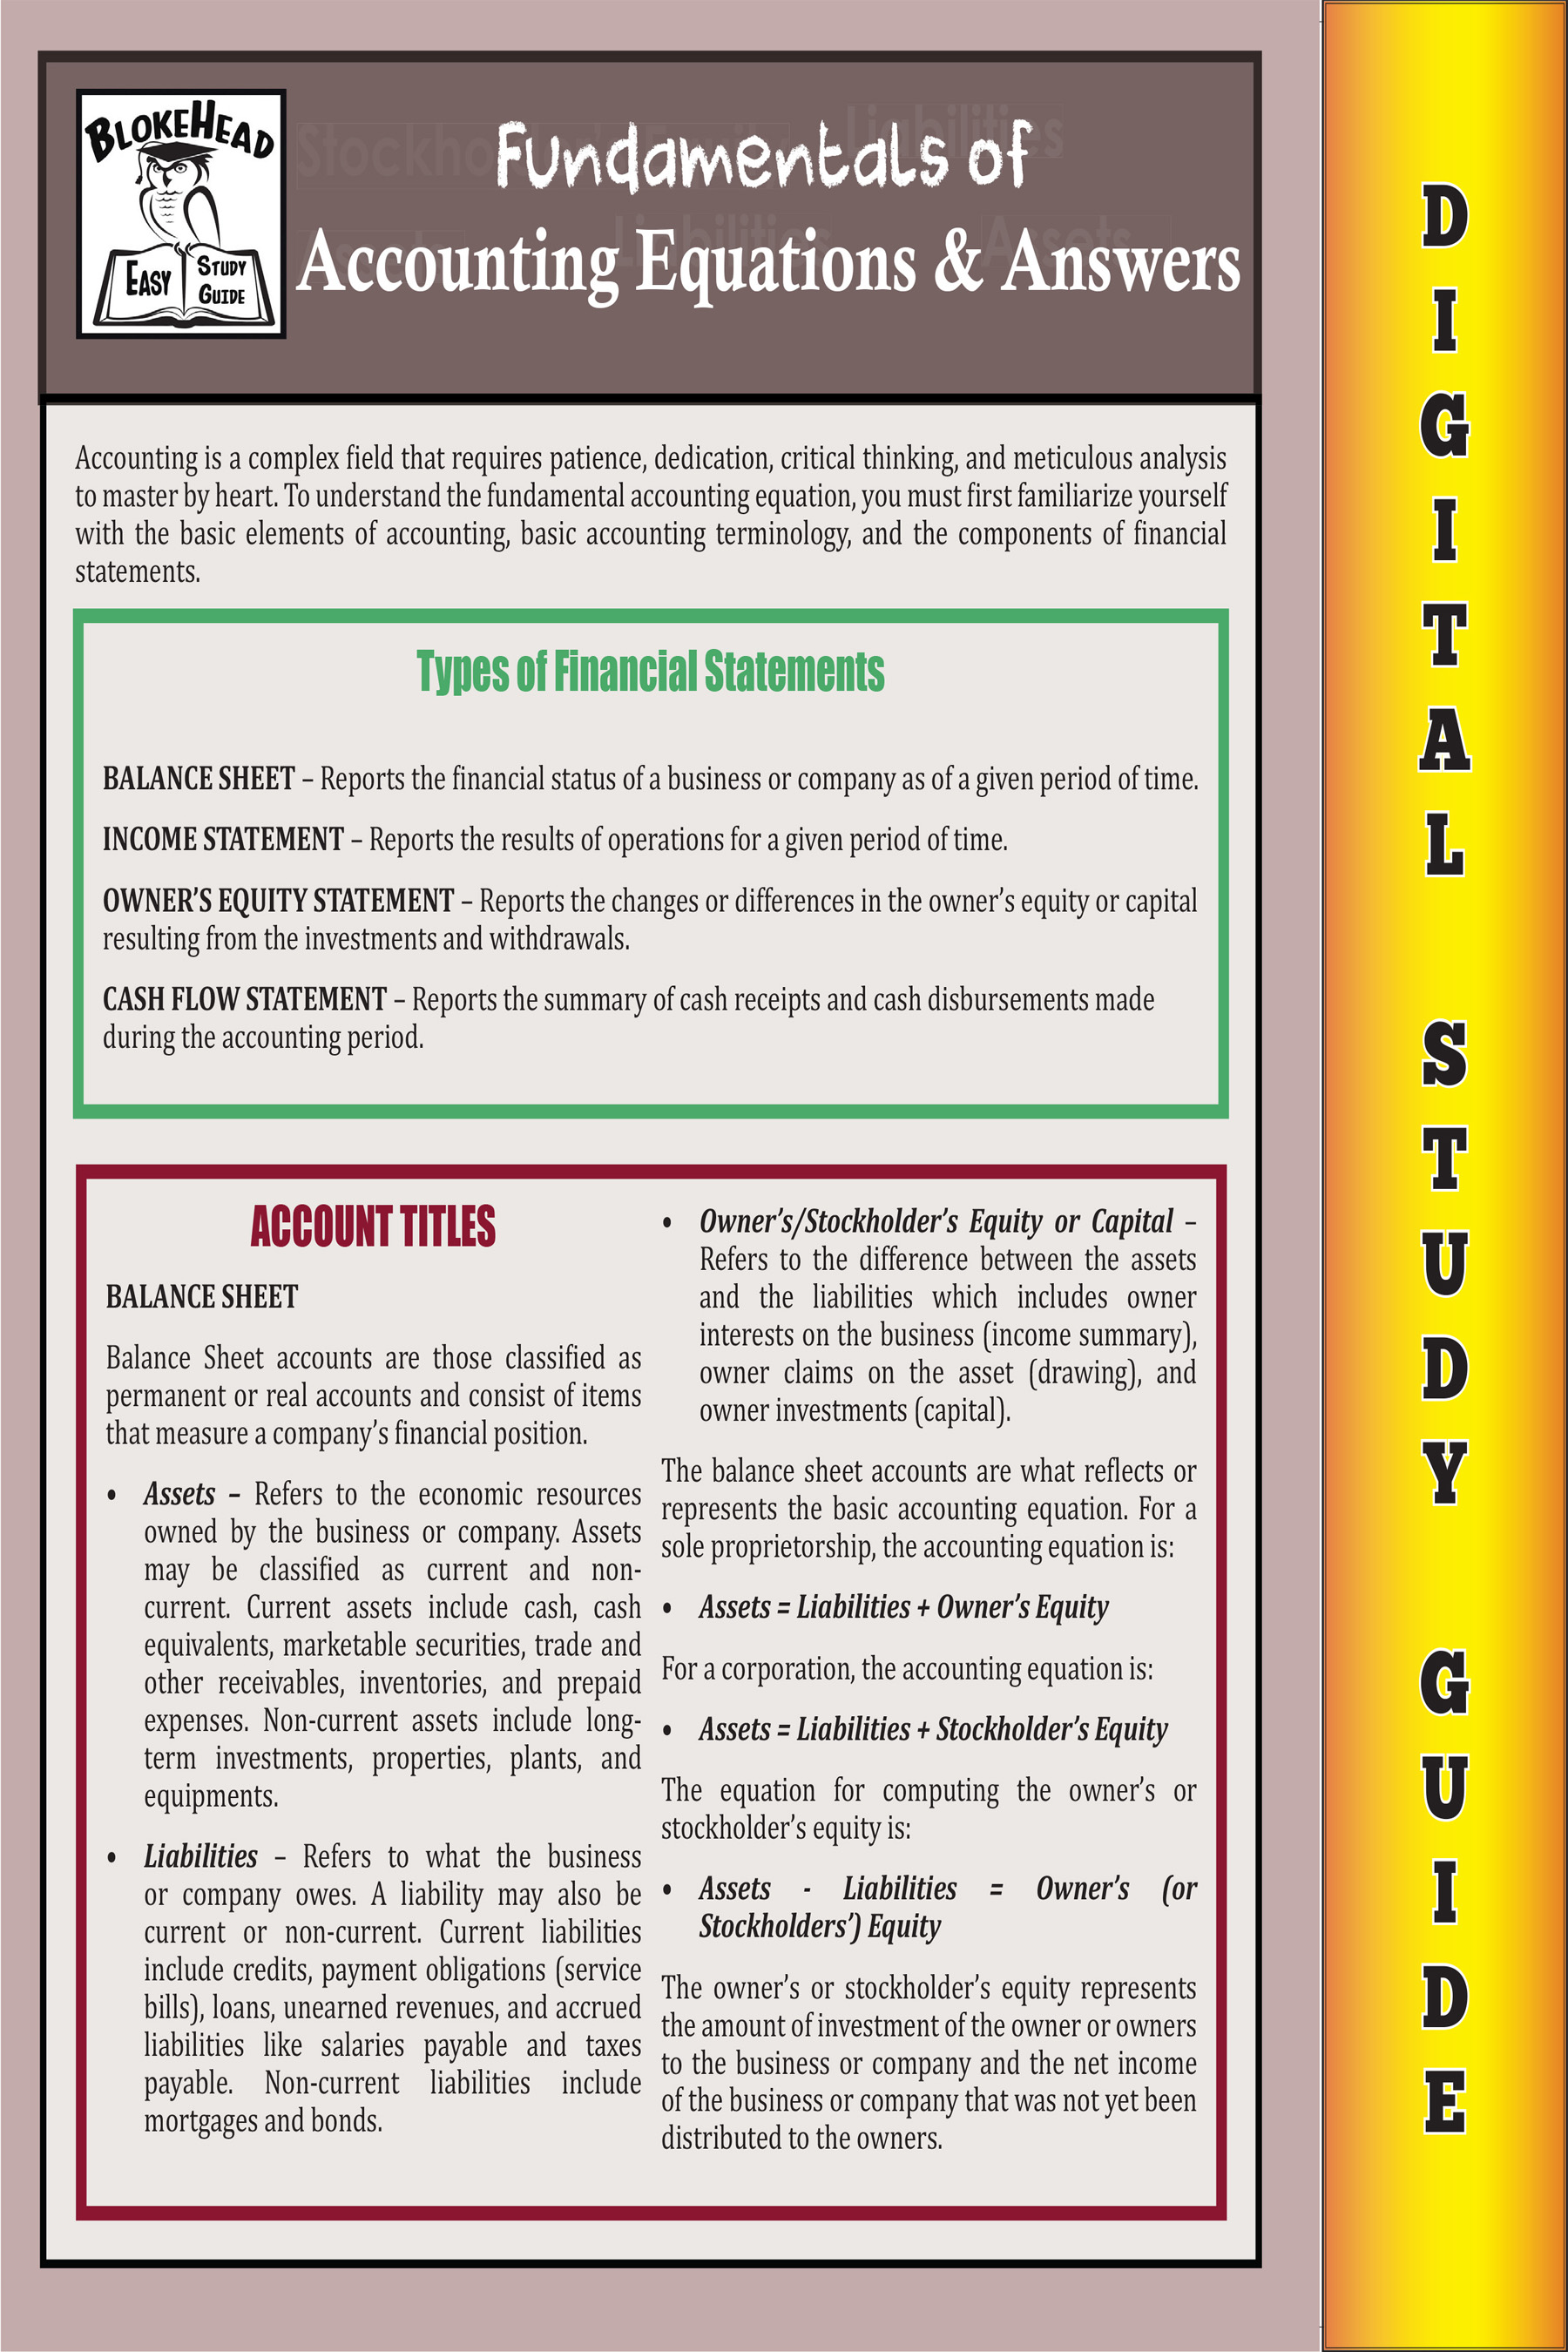 Accounting Equations & Answers ( Blokehead Easy Study Guide)